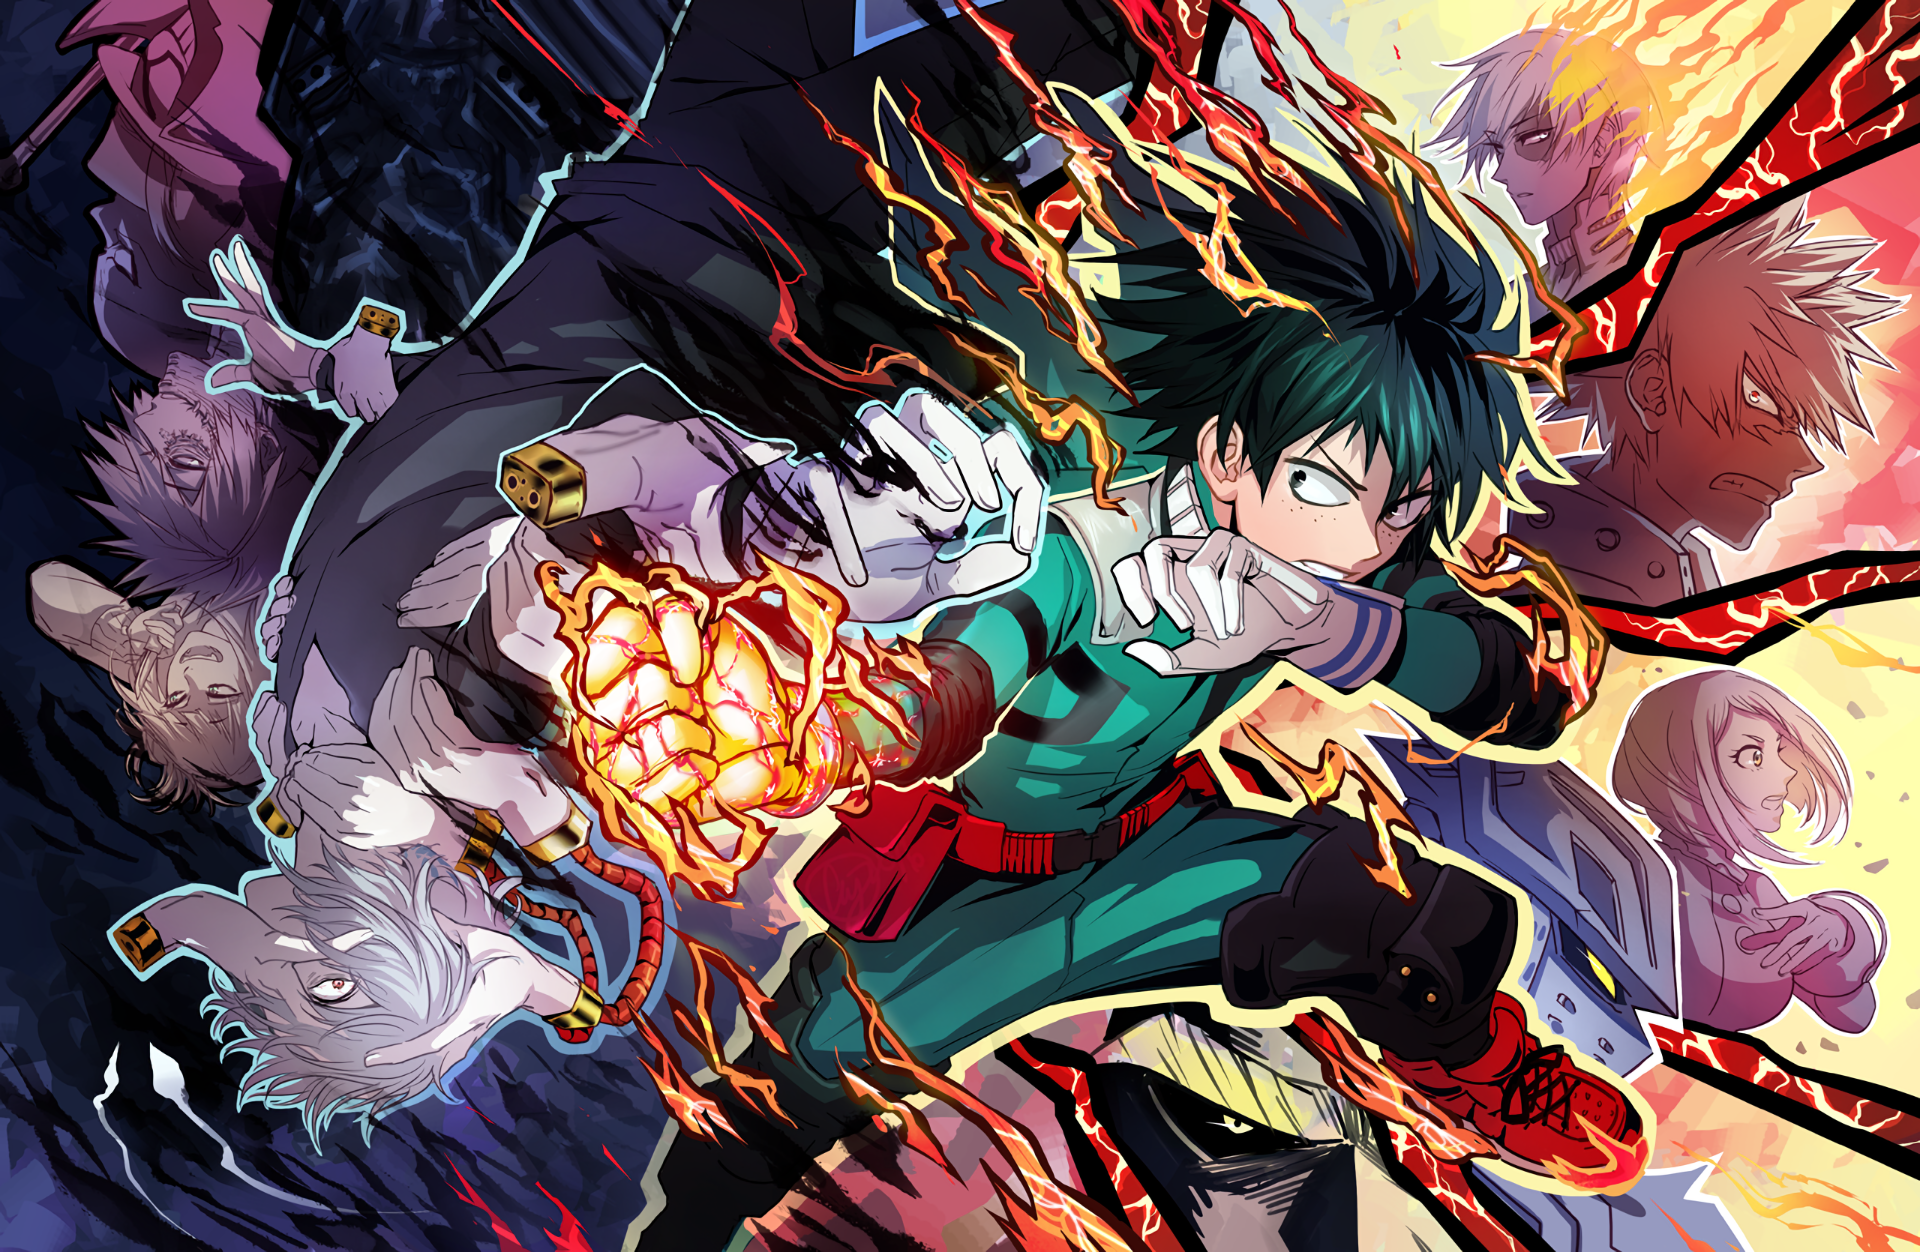 48 my hero academia wallpapers, background,photos and images of my hero academia for desktop windows 10, apple iphone and android mobile. 902 My Hero Academia HD Wallpapers | Backgrounds ...